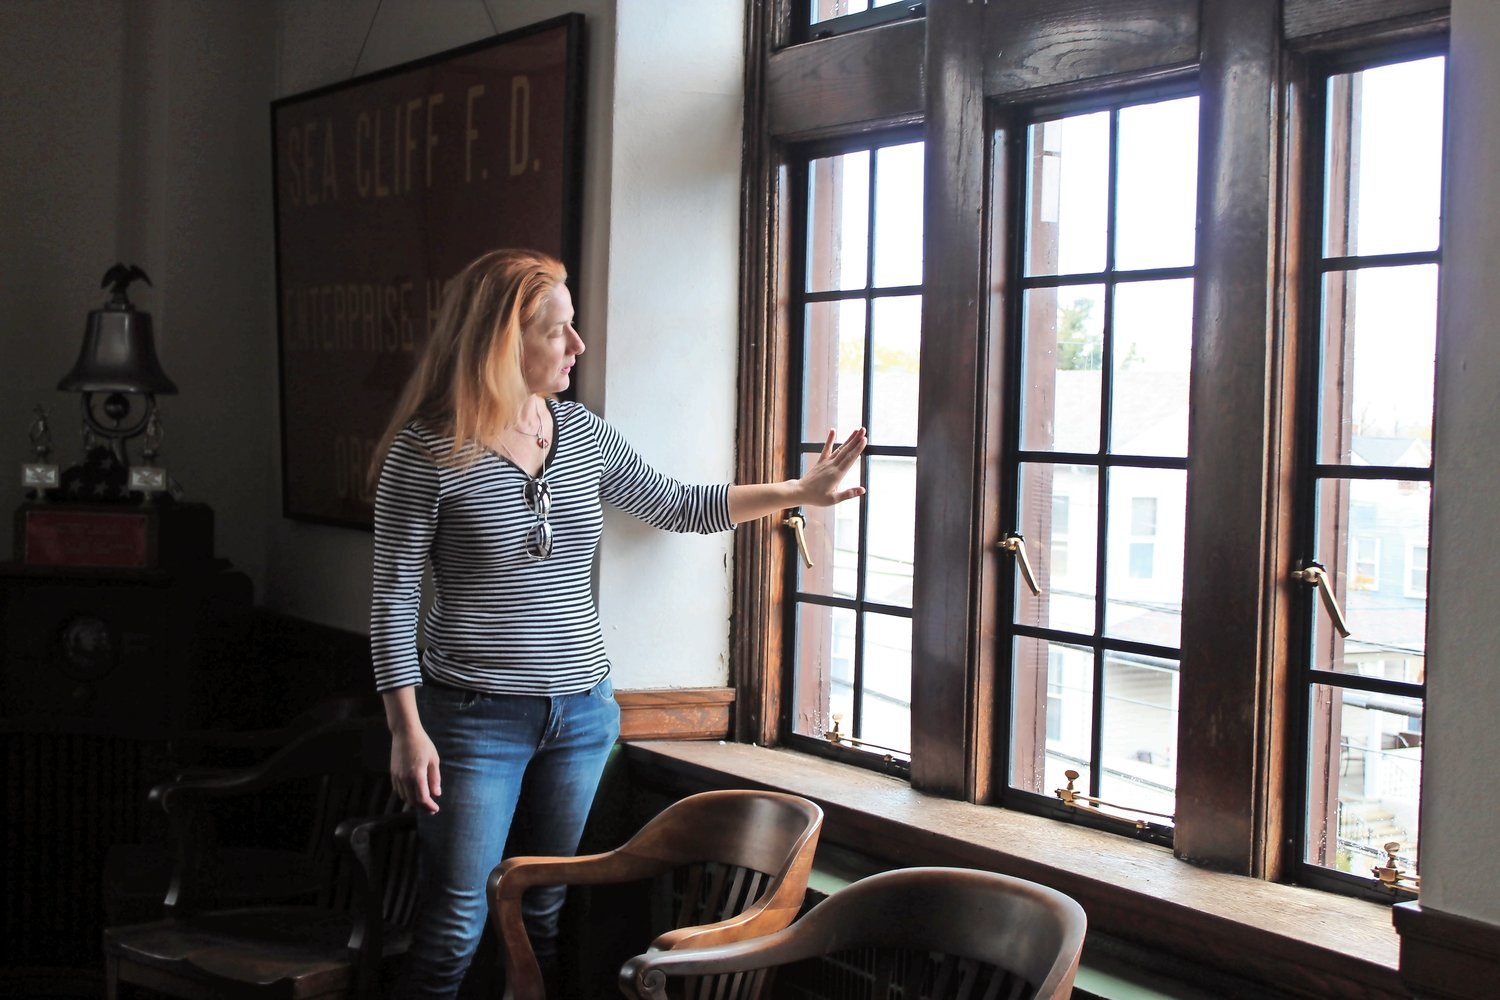 Erinn McDonnell, the Village of Sea Cliff grant writer, looked out onto Roslyn Avenue through the newly restored windows of the Sea Cliff Firehouse.